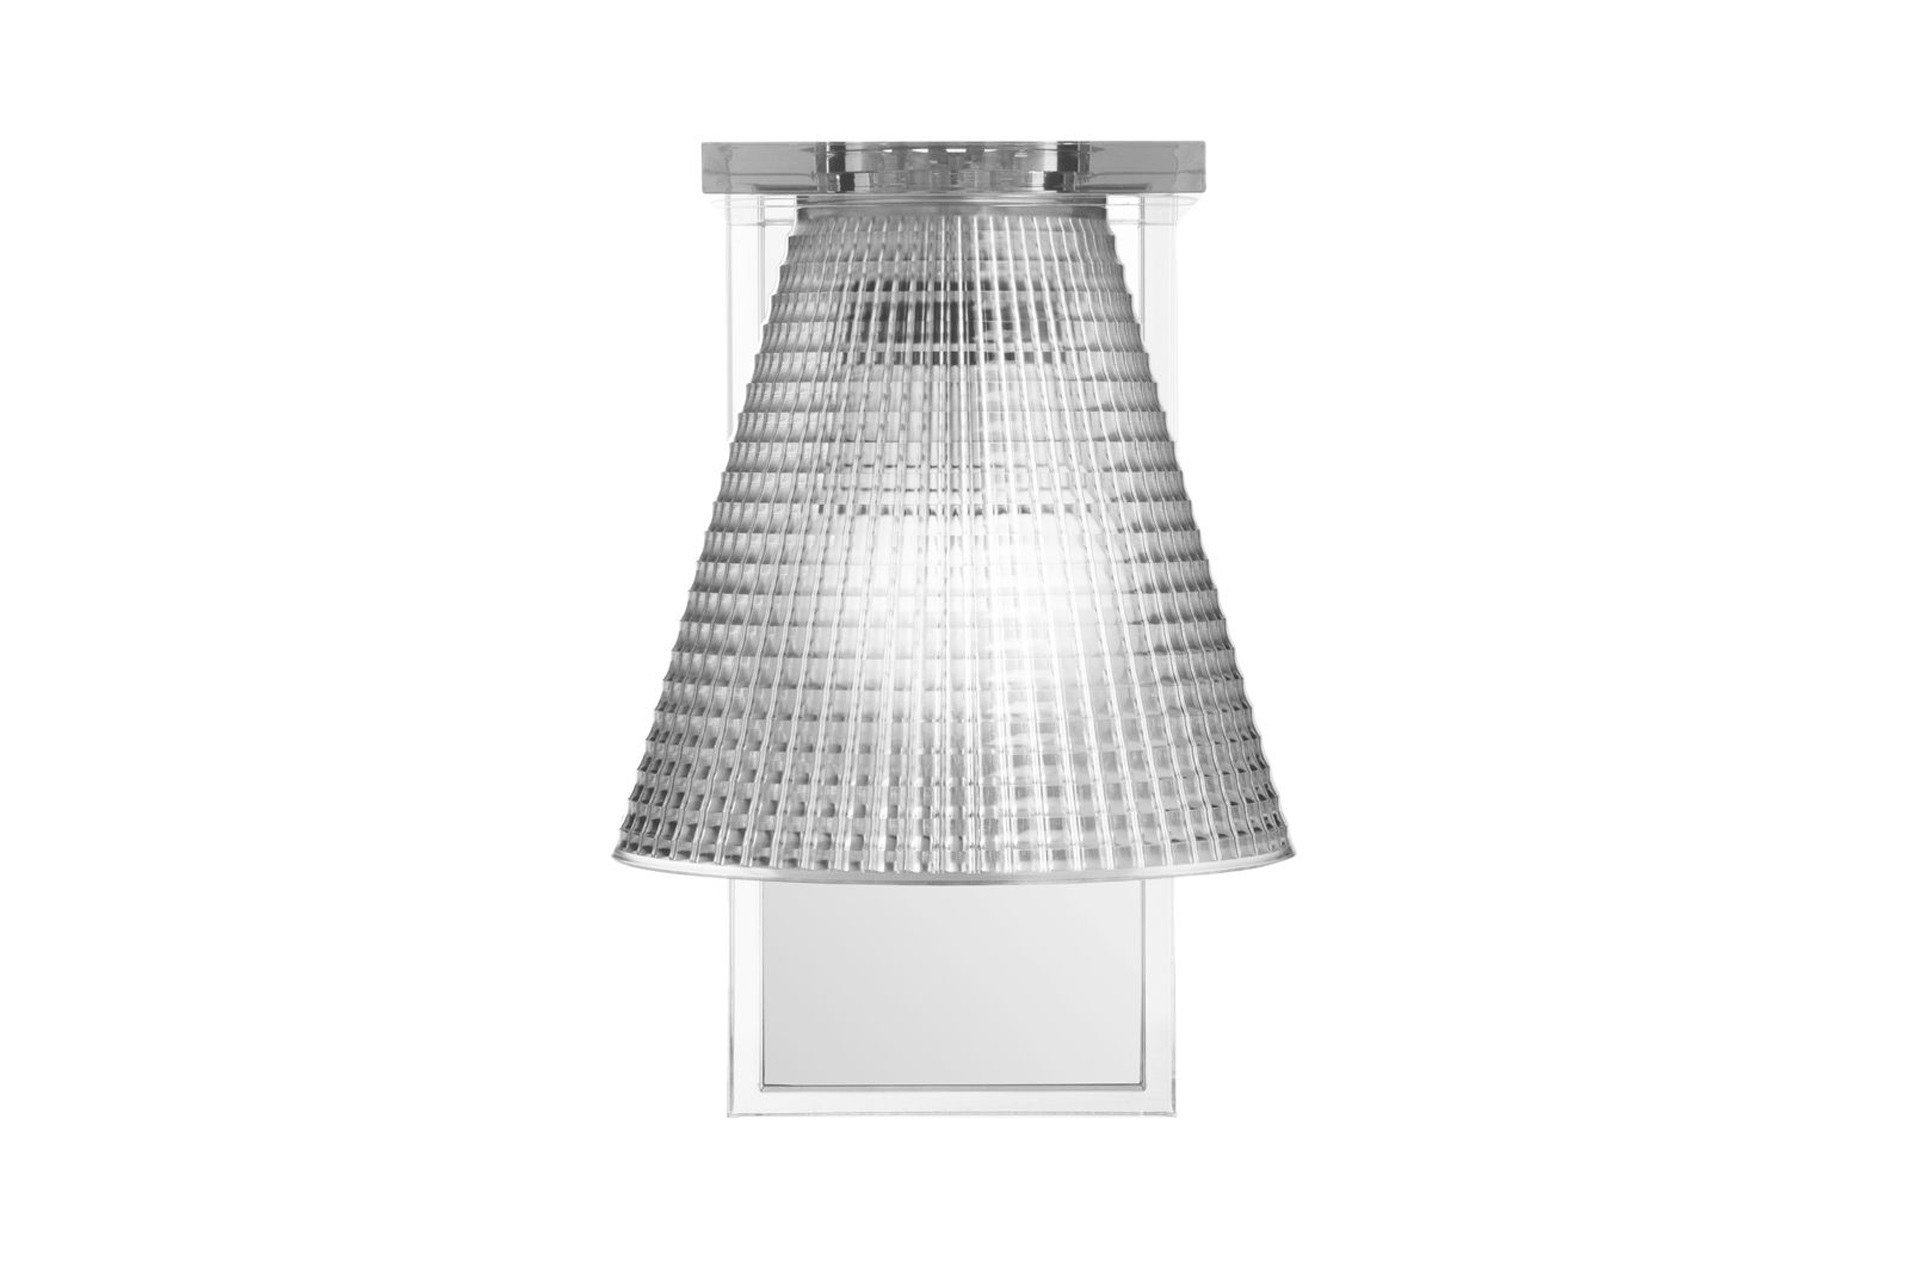 Kartell lampada applique light air trasparente acquista su zanolli